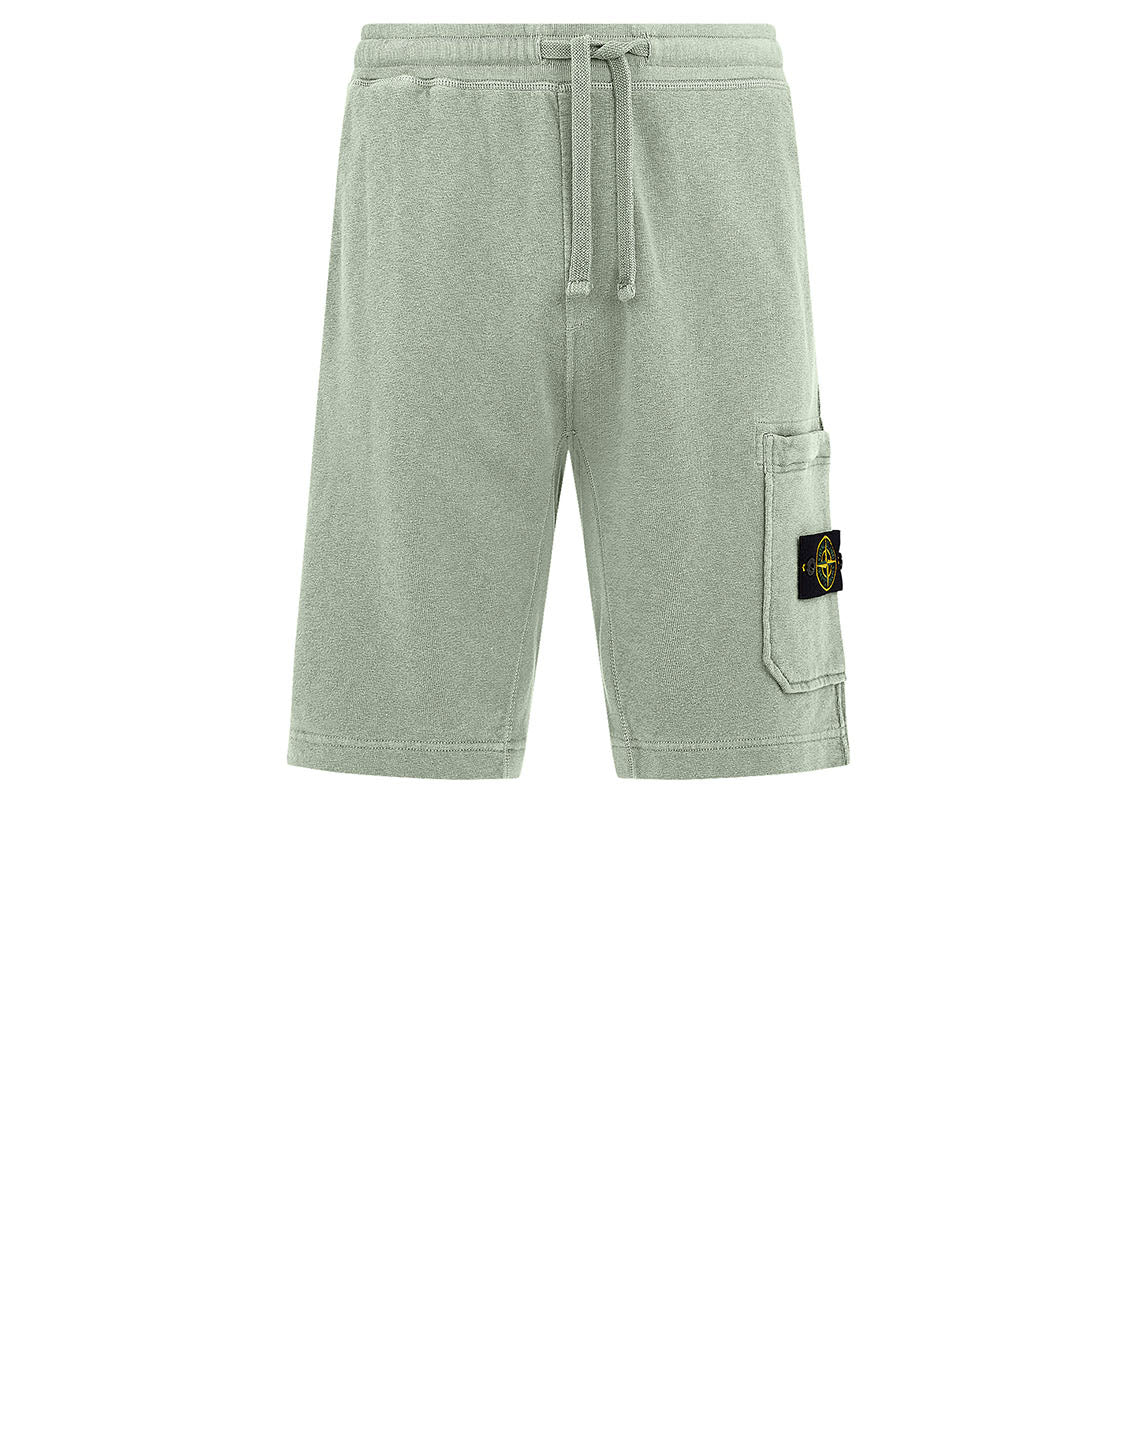 63560 T.CO+OLD Fleece Bermuda Shorts in Light Green